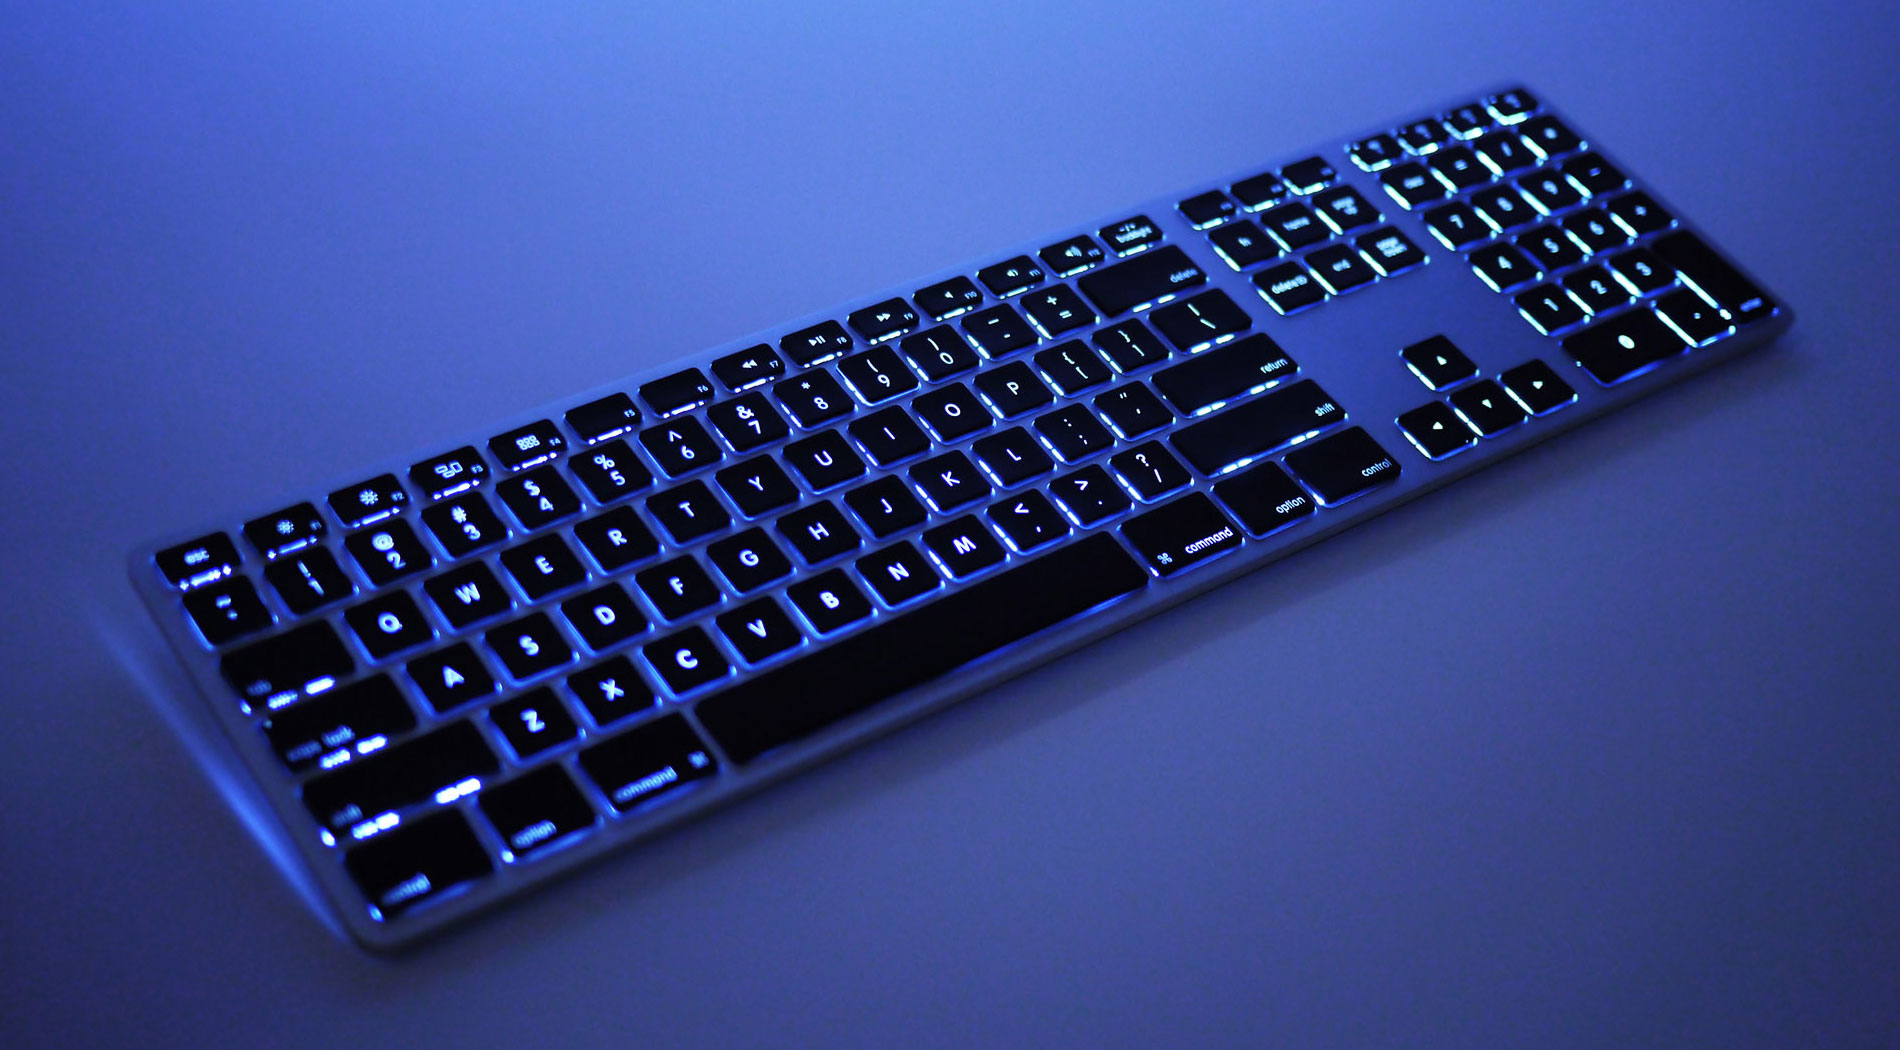 3a5c2b6b57d Wireless Aluminum Keyboard with Backlight - Low Light with Backlighting On